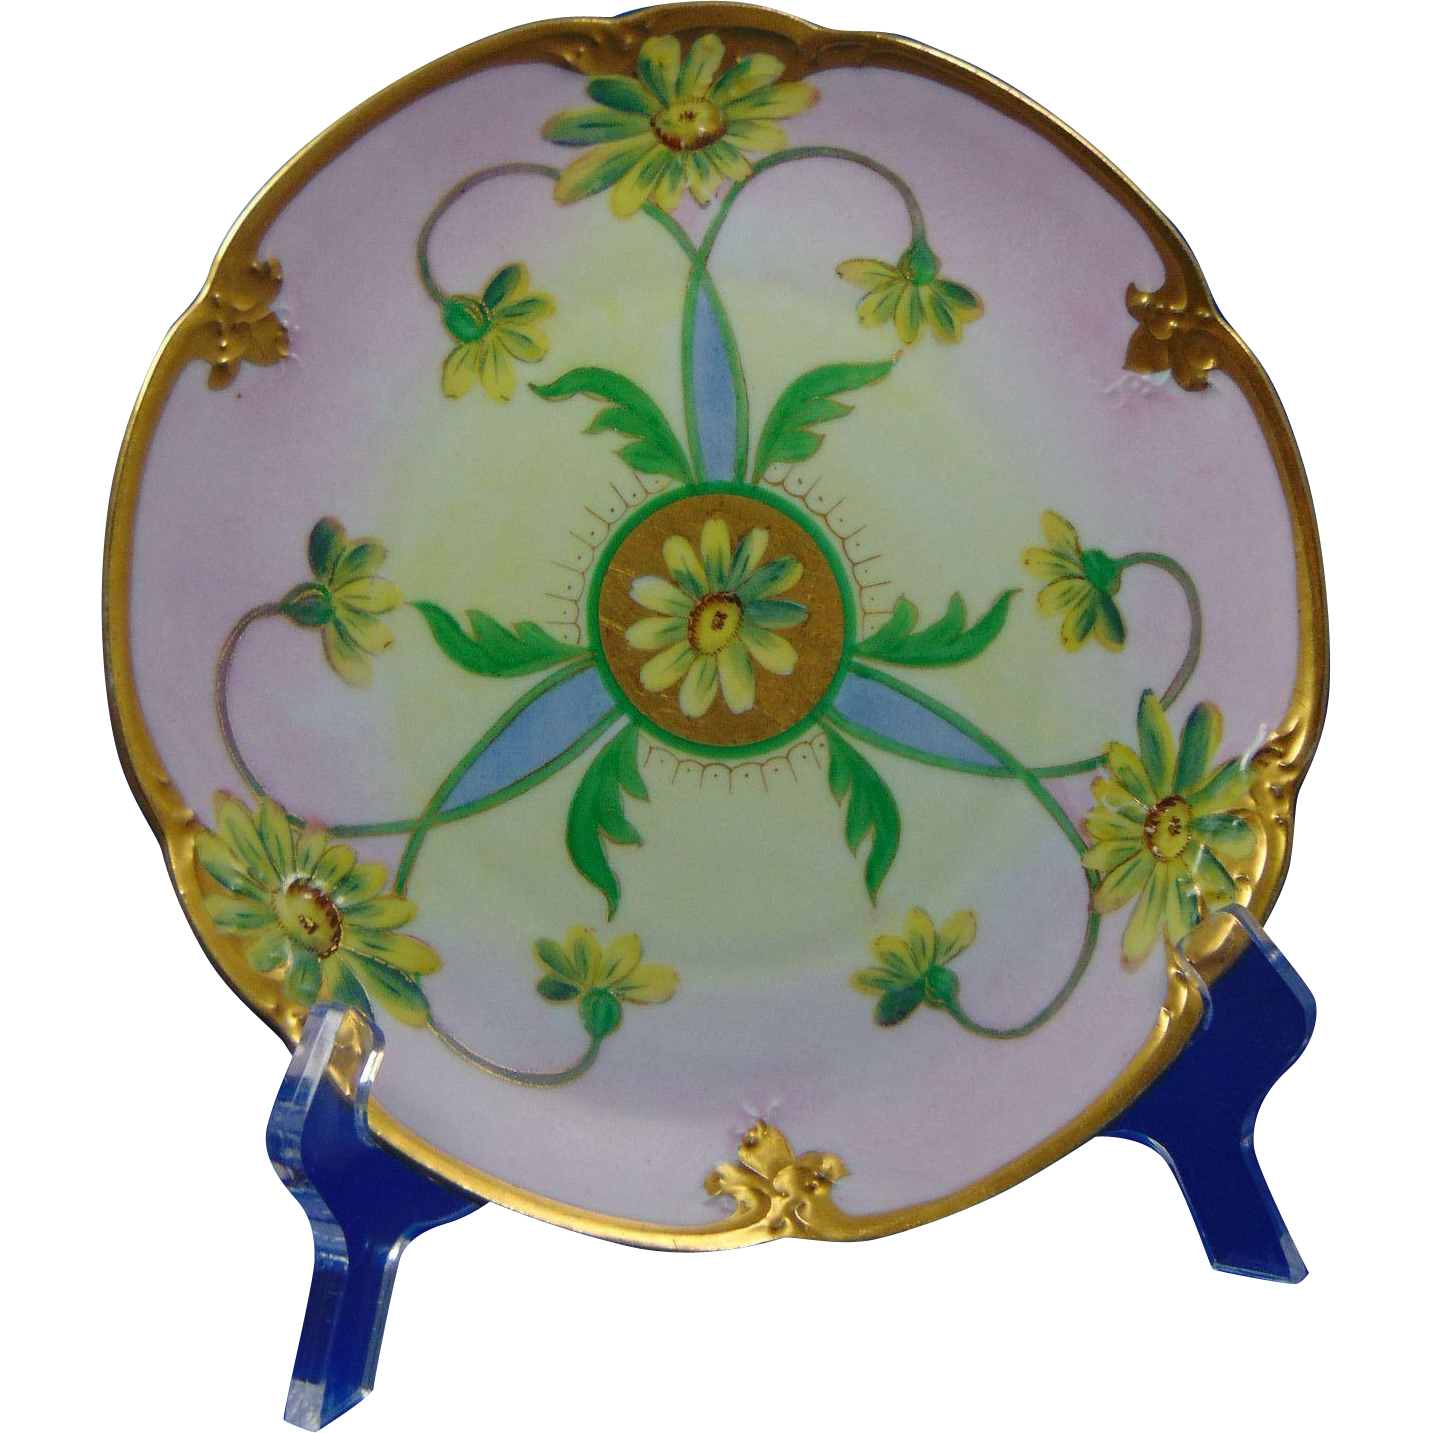 Edward W. Donath Studio Radiating Daisy Design Plate (c.1910-1915)